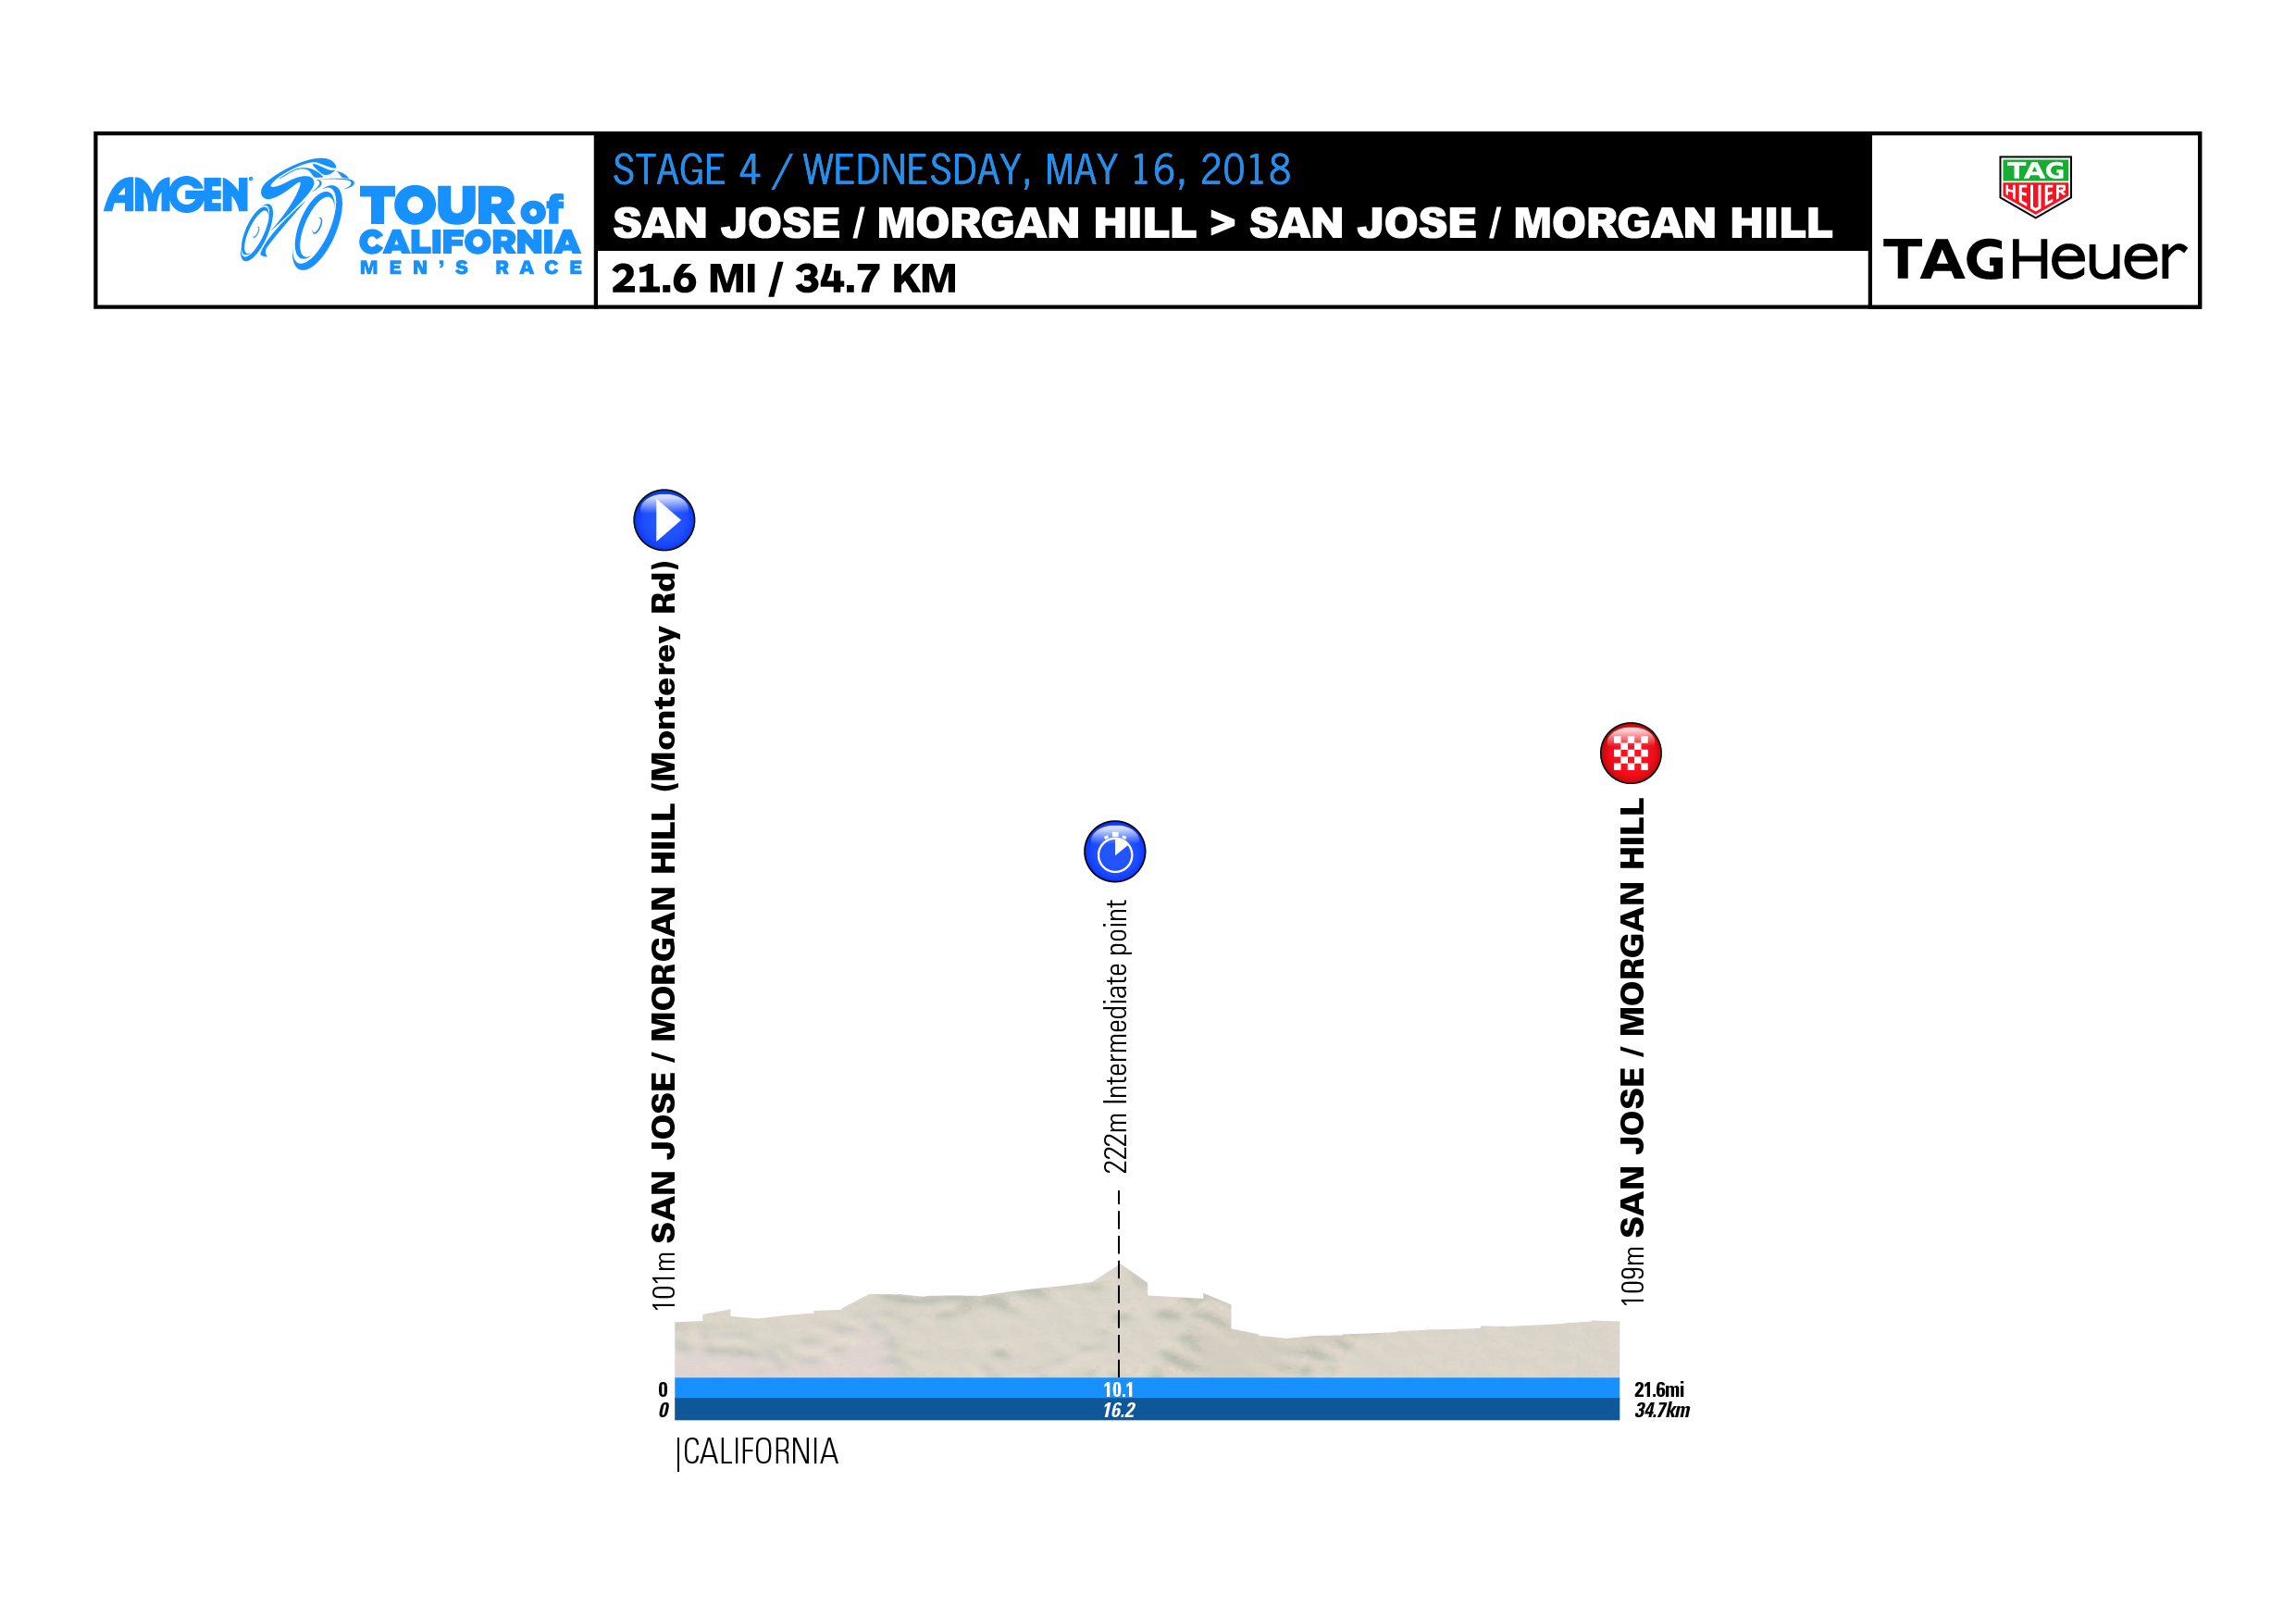 Amgen Tour of California Tour-of-california-2018-stage-4-profile-82c912e885